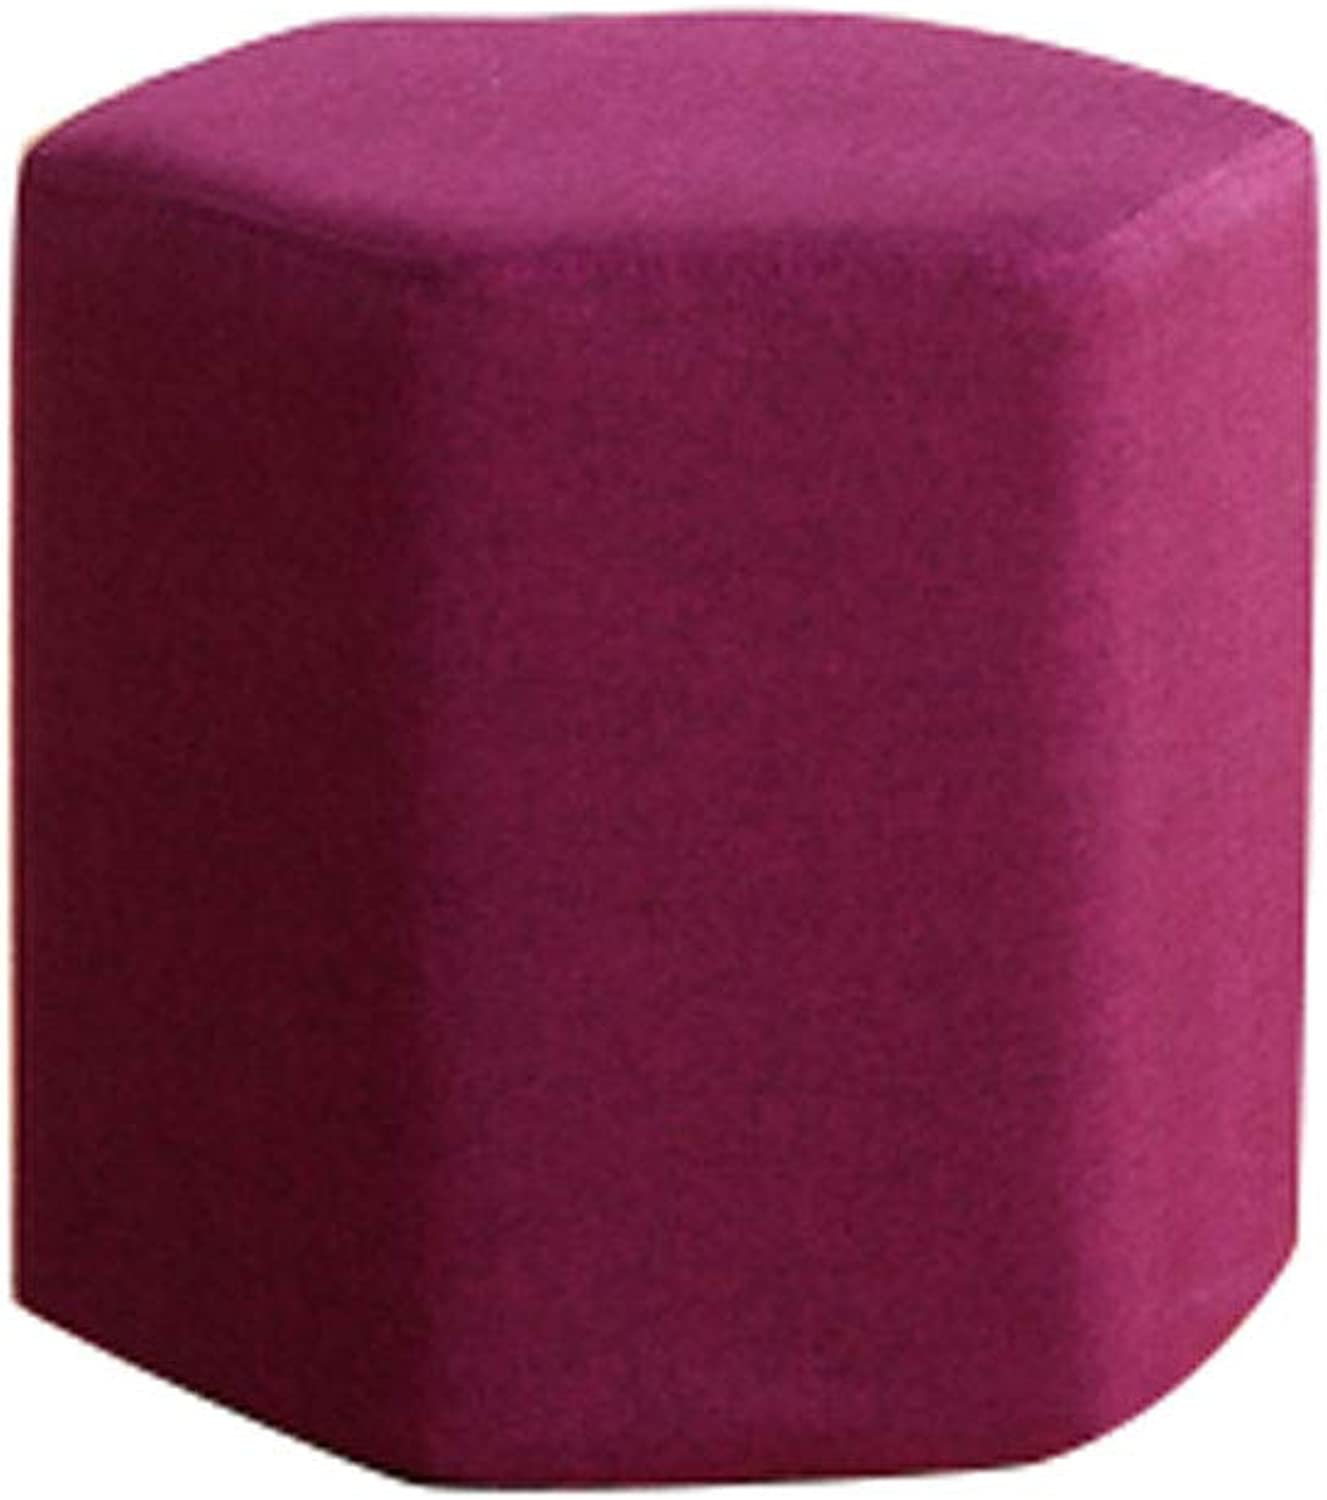 European Simple Solid Wood Fabric shoes Change shoes Short Stool Home Living Room Sofa Six Sides Prismatic Seat Stool Stool (color   Wine Red, Size   30  30cm)